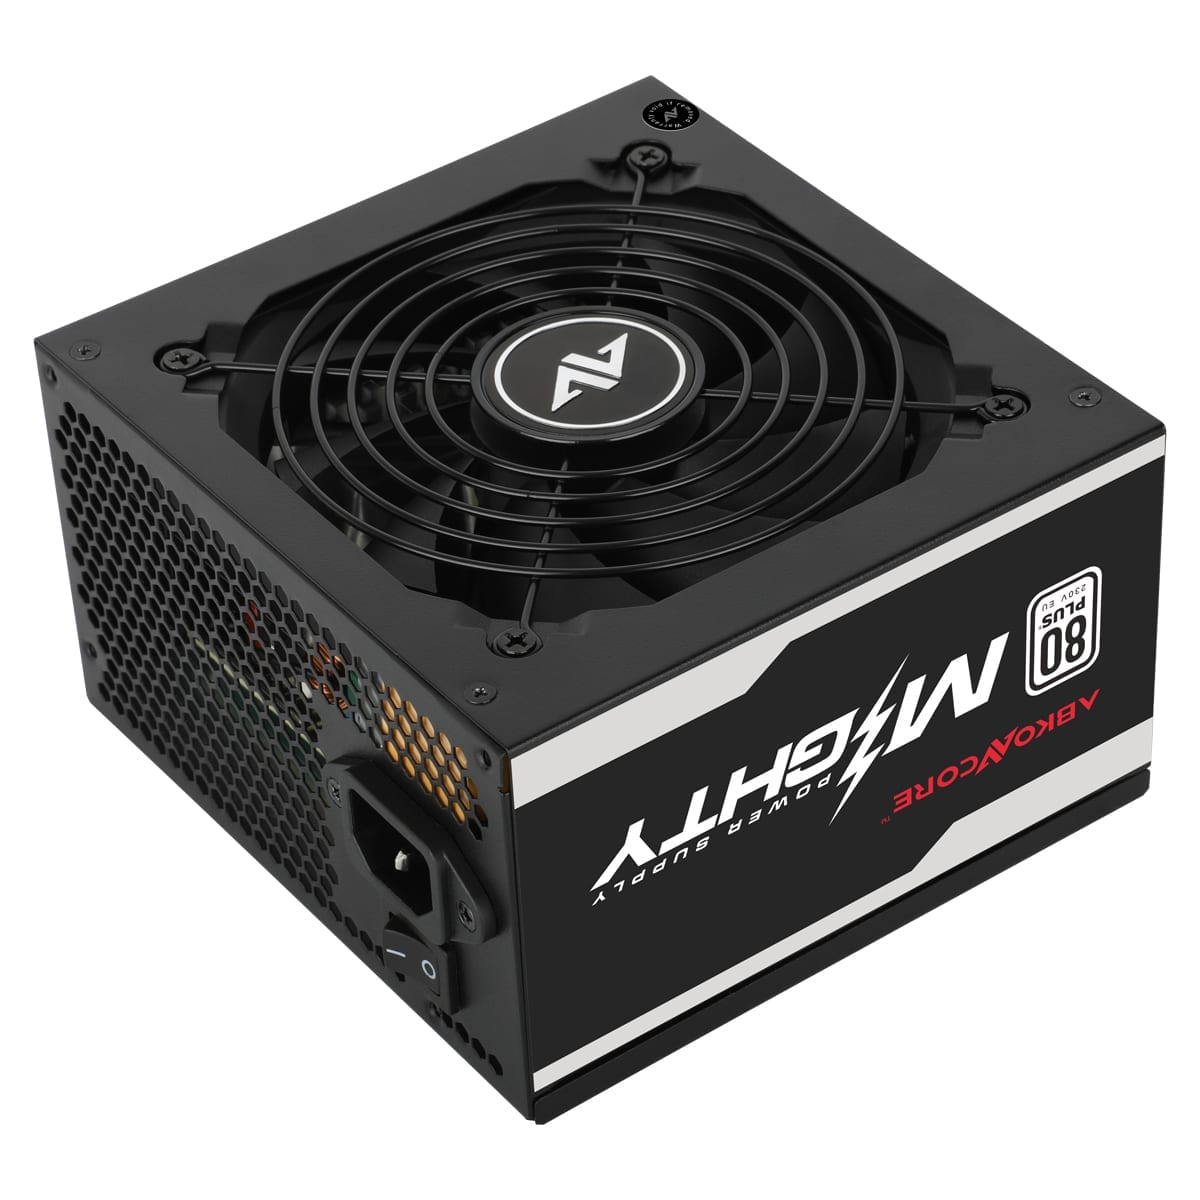 Abkoncore Mighty 700W